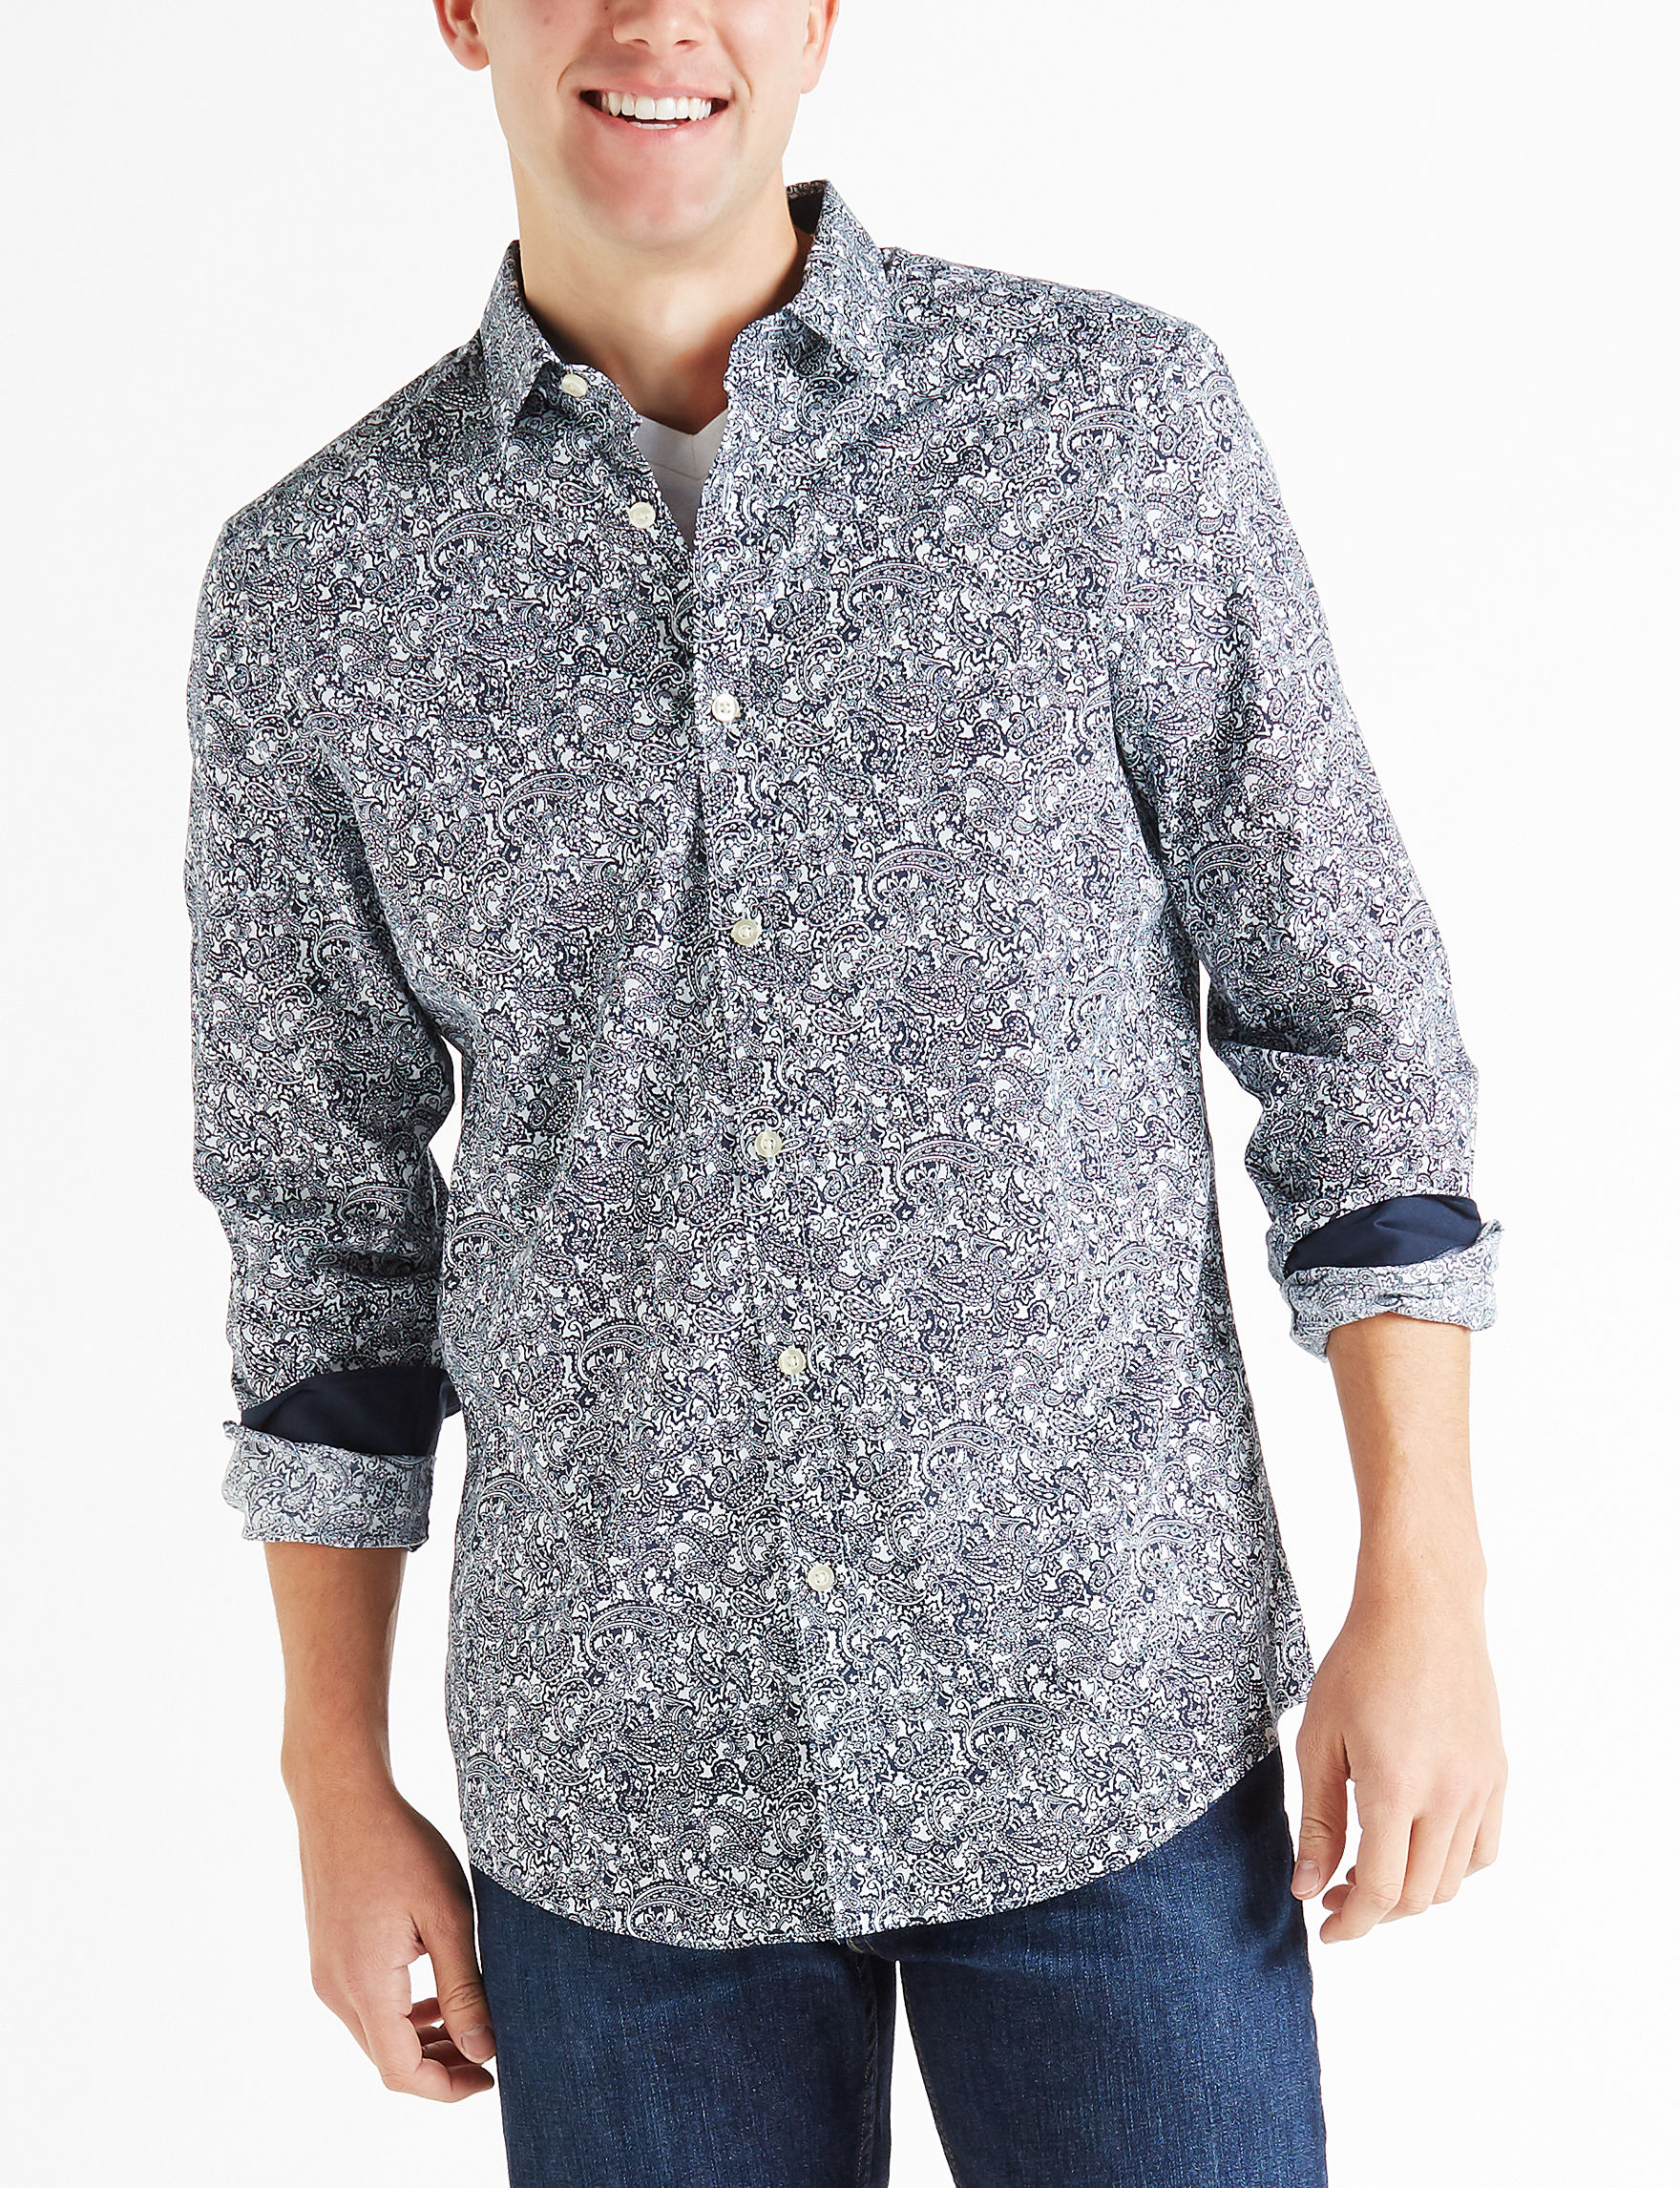 Axist Blue Paisley Casual Button Down Shirts